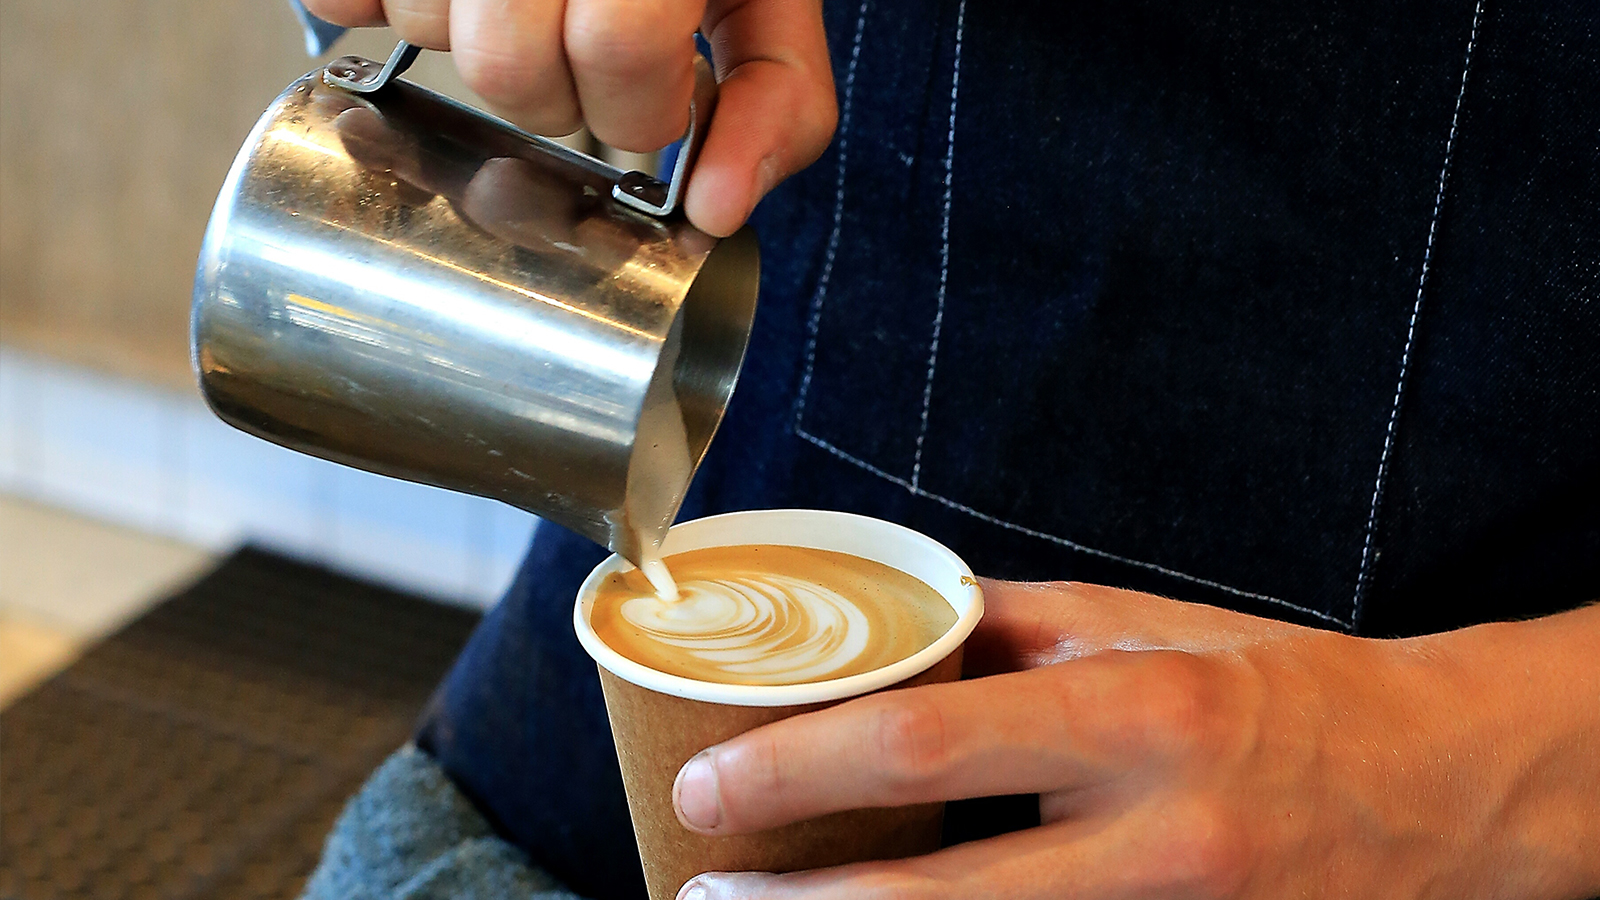 Barista adding steamed milk to expresso making a Cappuccino.